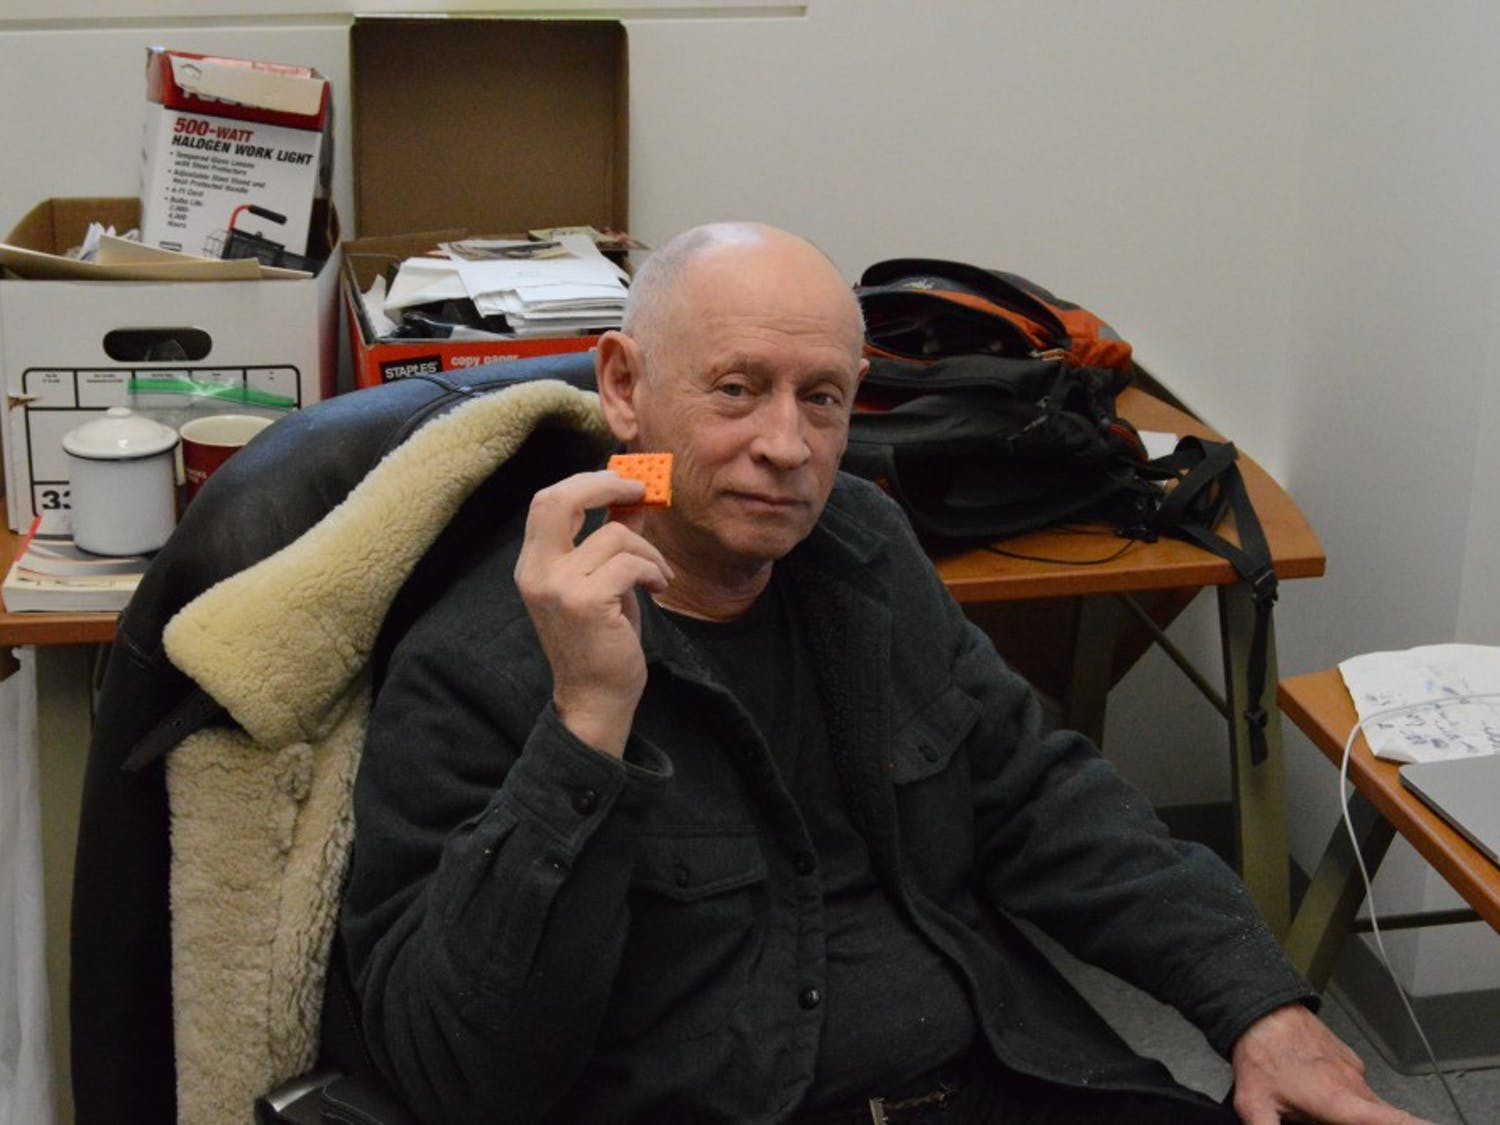 UB professor David Schirm enjoys a cheese and peanut butter cracker in his office. Schirm, a celebrated artist and tenured professor, is set to retire in 2020.